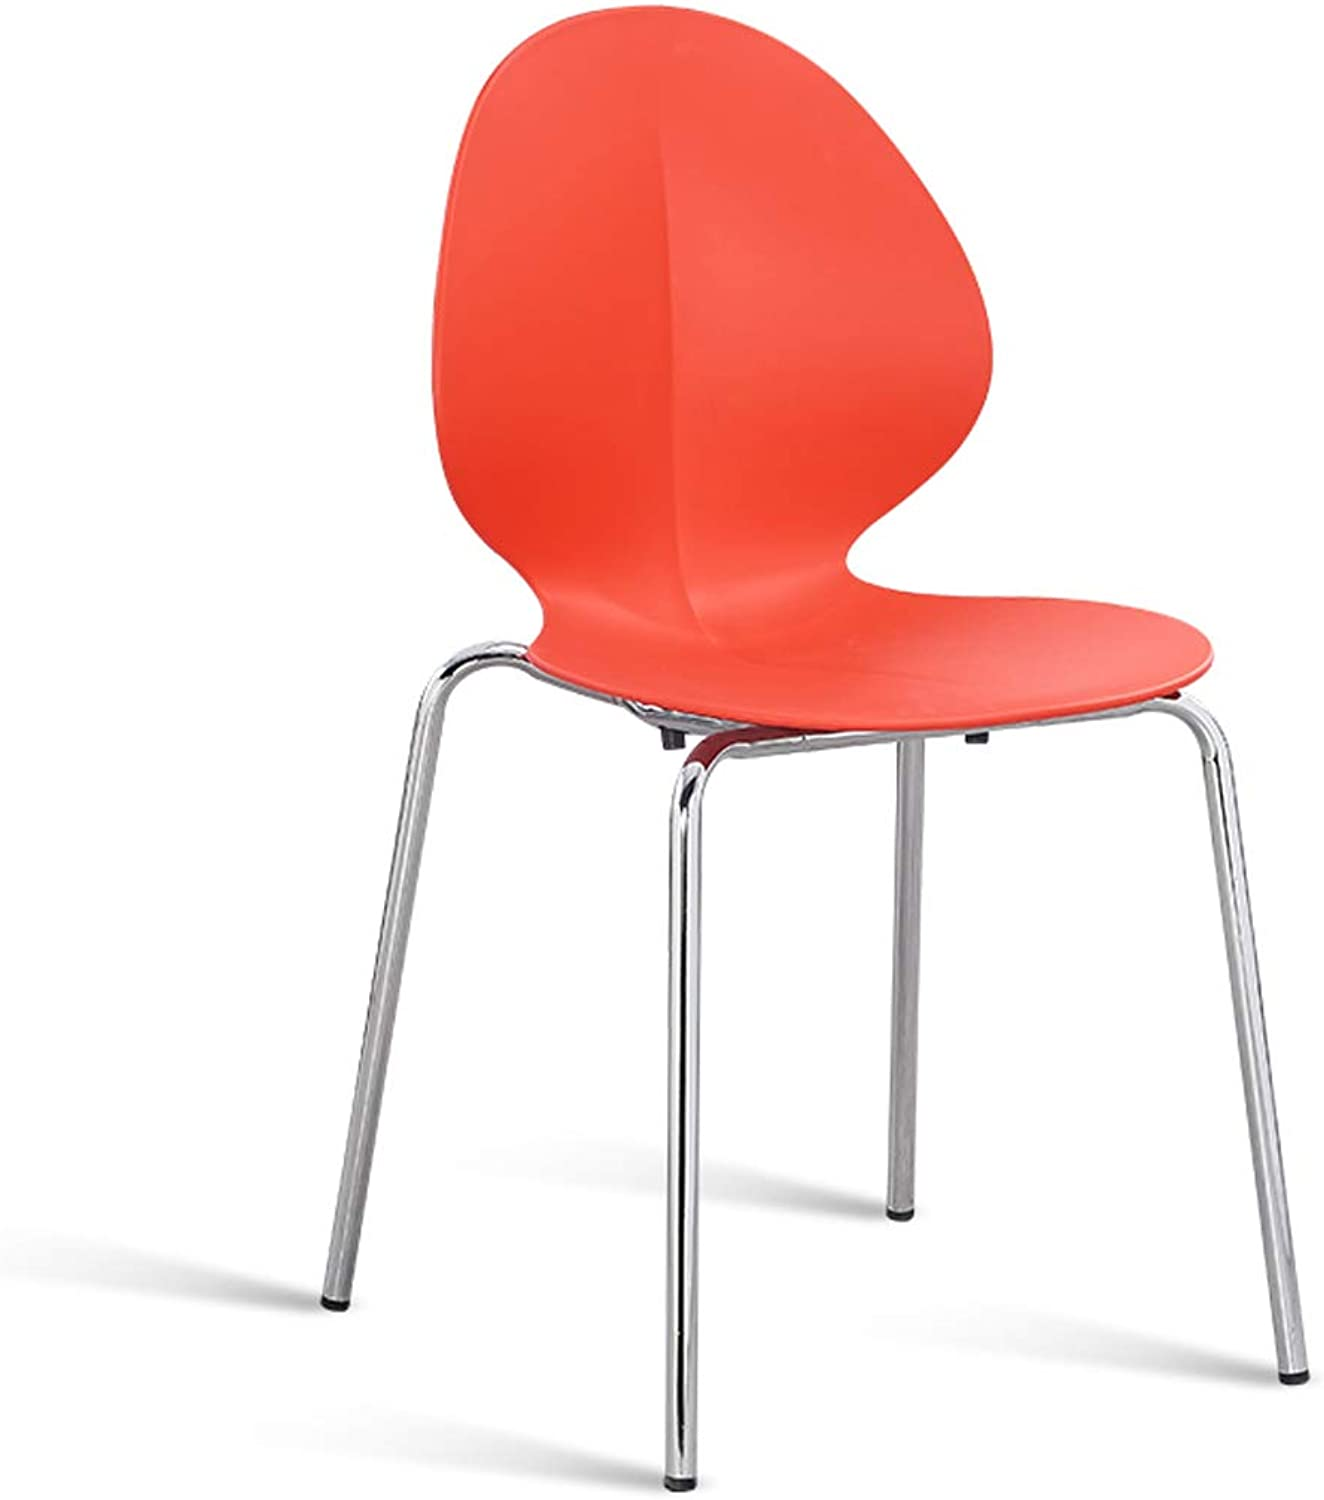 LRW Nordic Iron Backrest Chair, Red Household Iron Leg Dining Chair, Milk Tea Shop Stool,